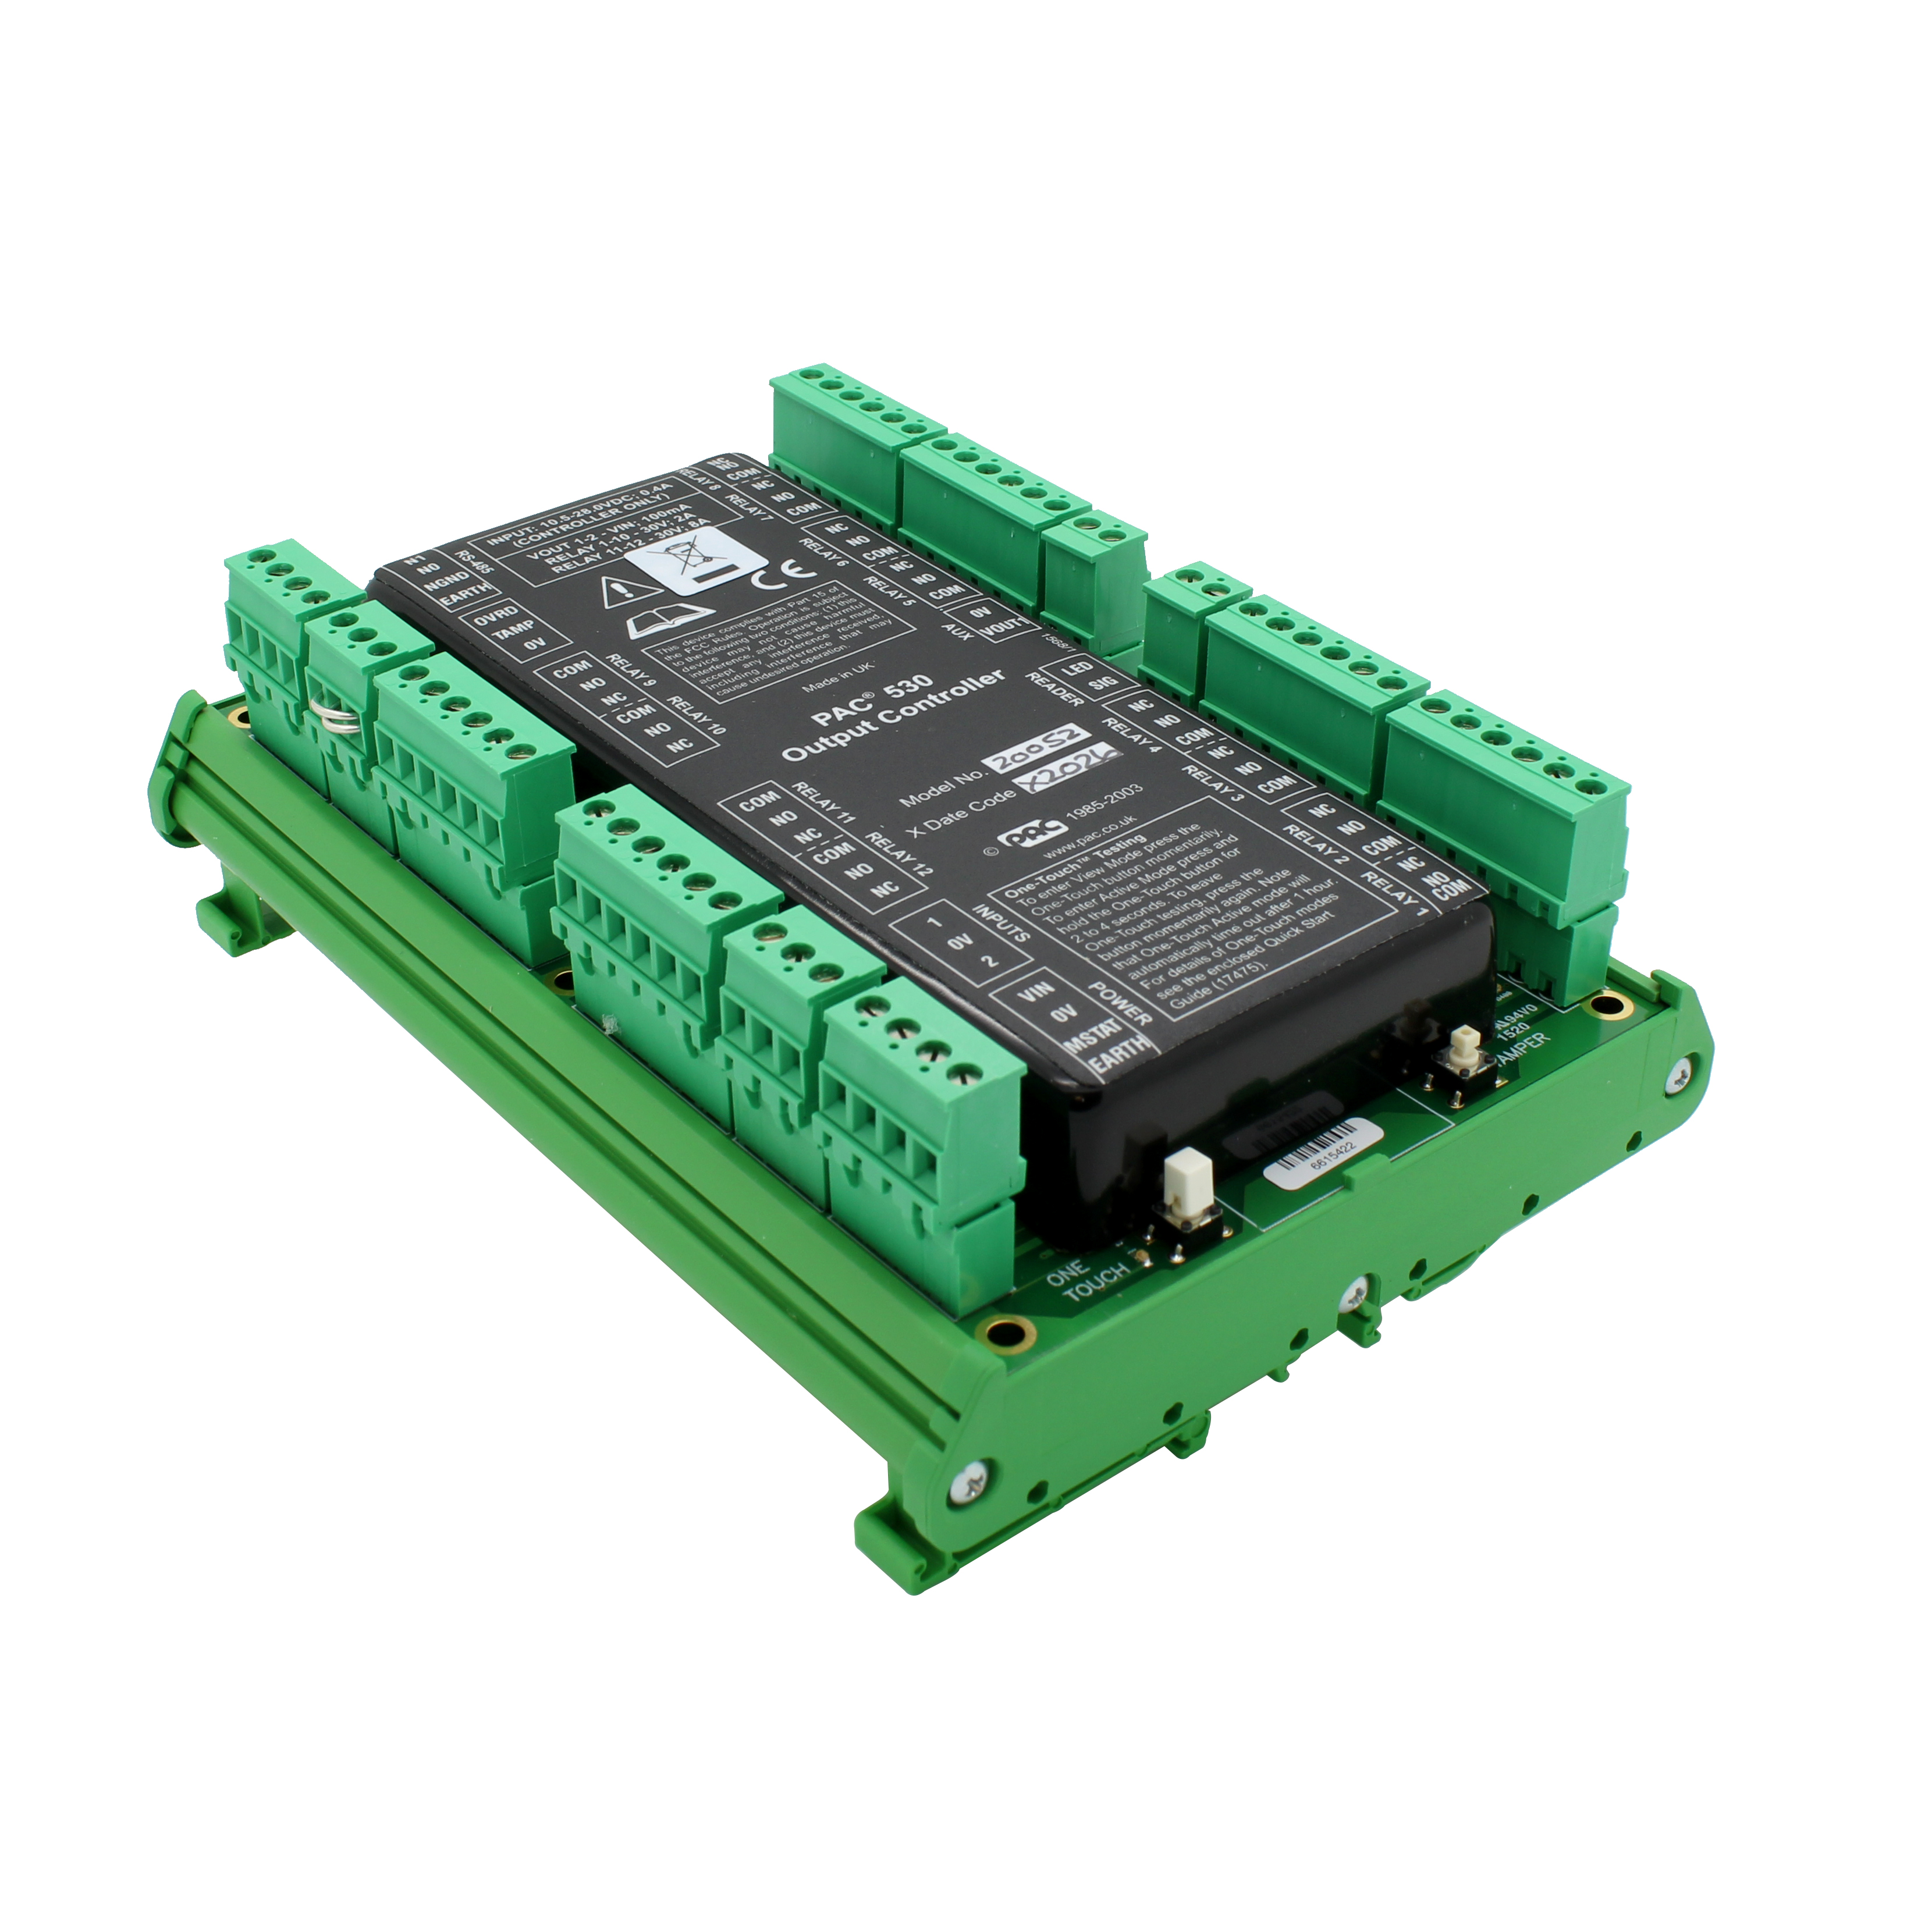 PAC 530 output controller - DIN mount